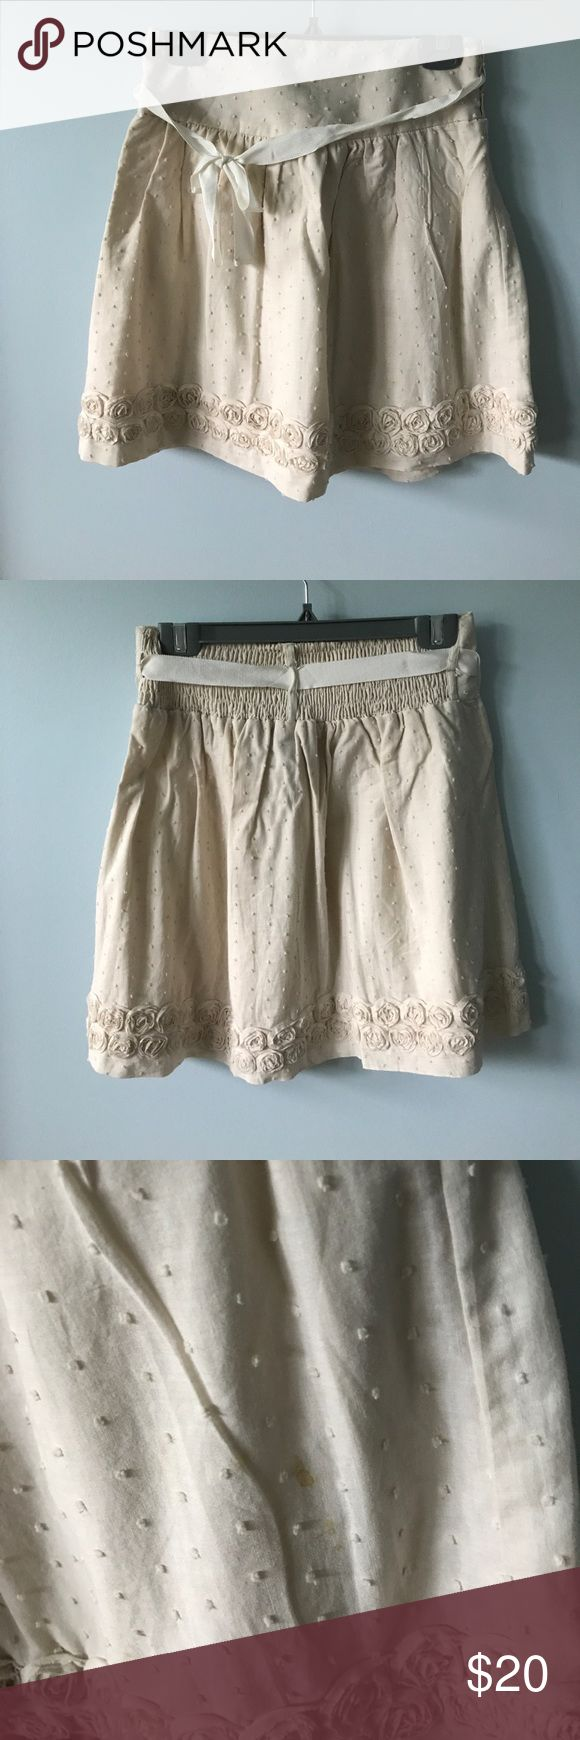 Floral Skirt Small coffee stain as pictured. Cream colored with a ribbon and rosette trim. {ask questions & make offers} Skirts Mini